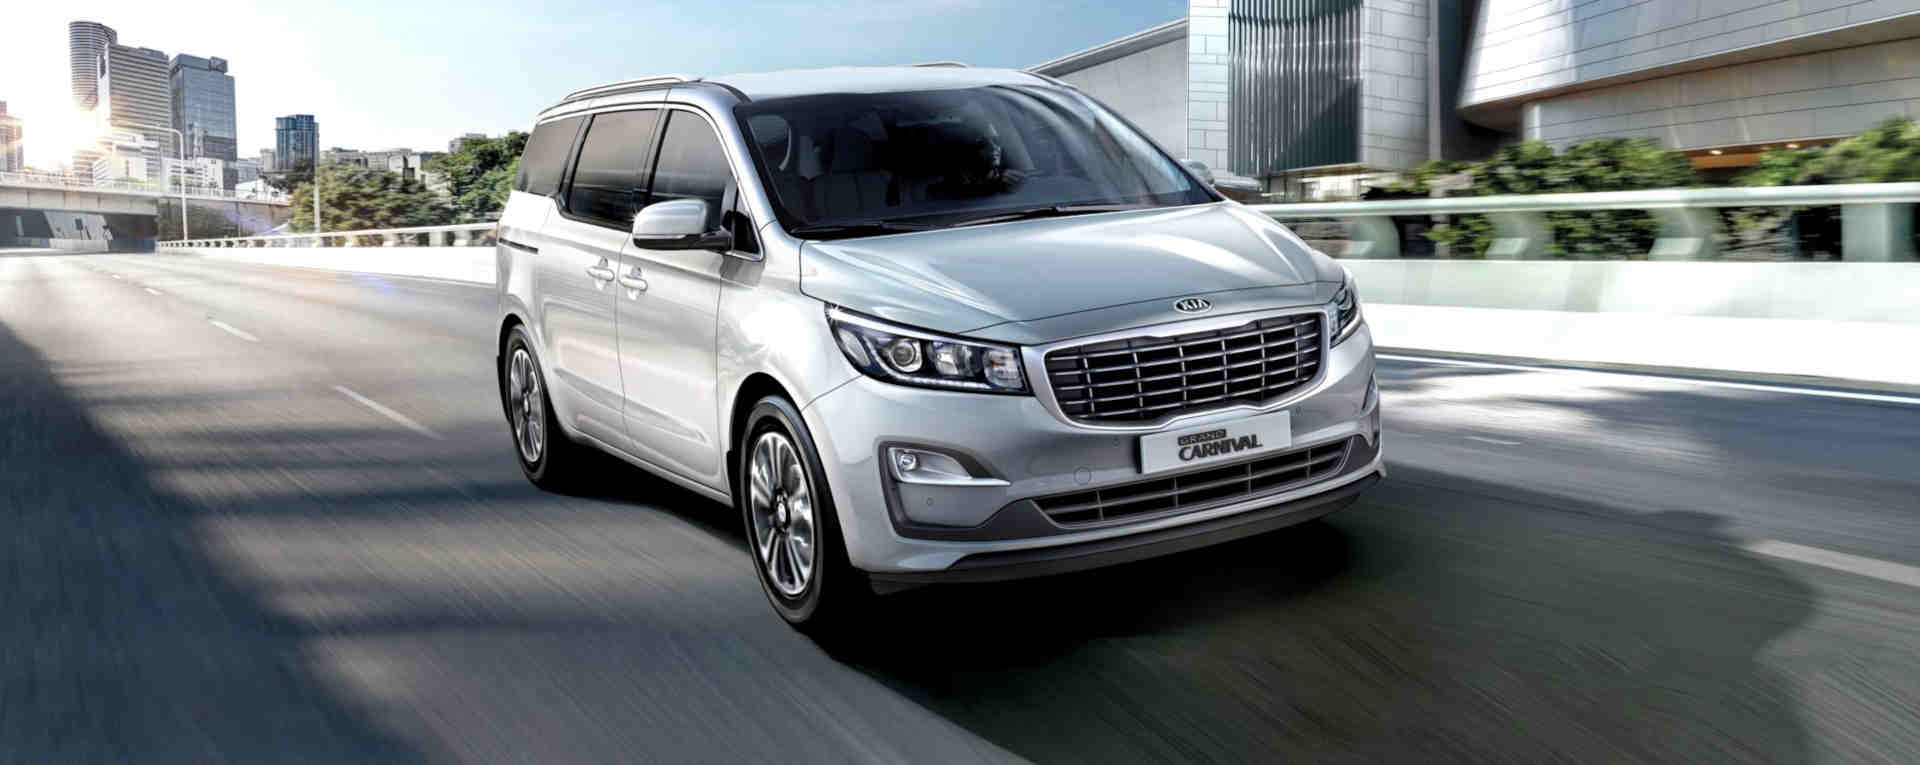 Foto do Kia Grand Carnival Brasil 2022